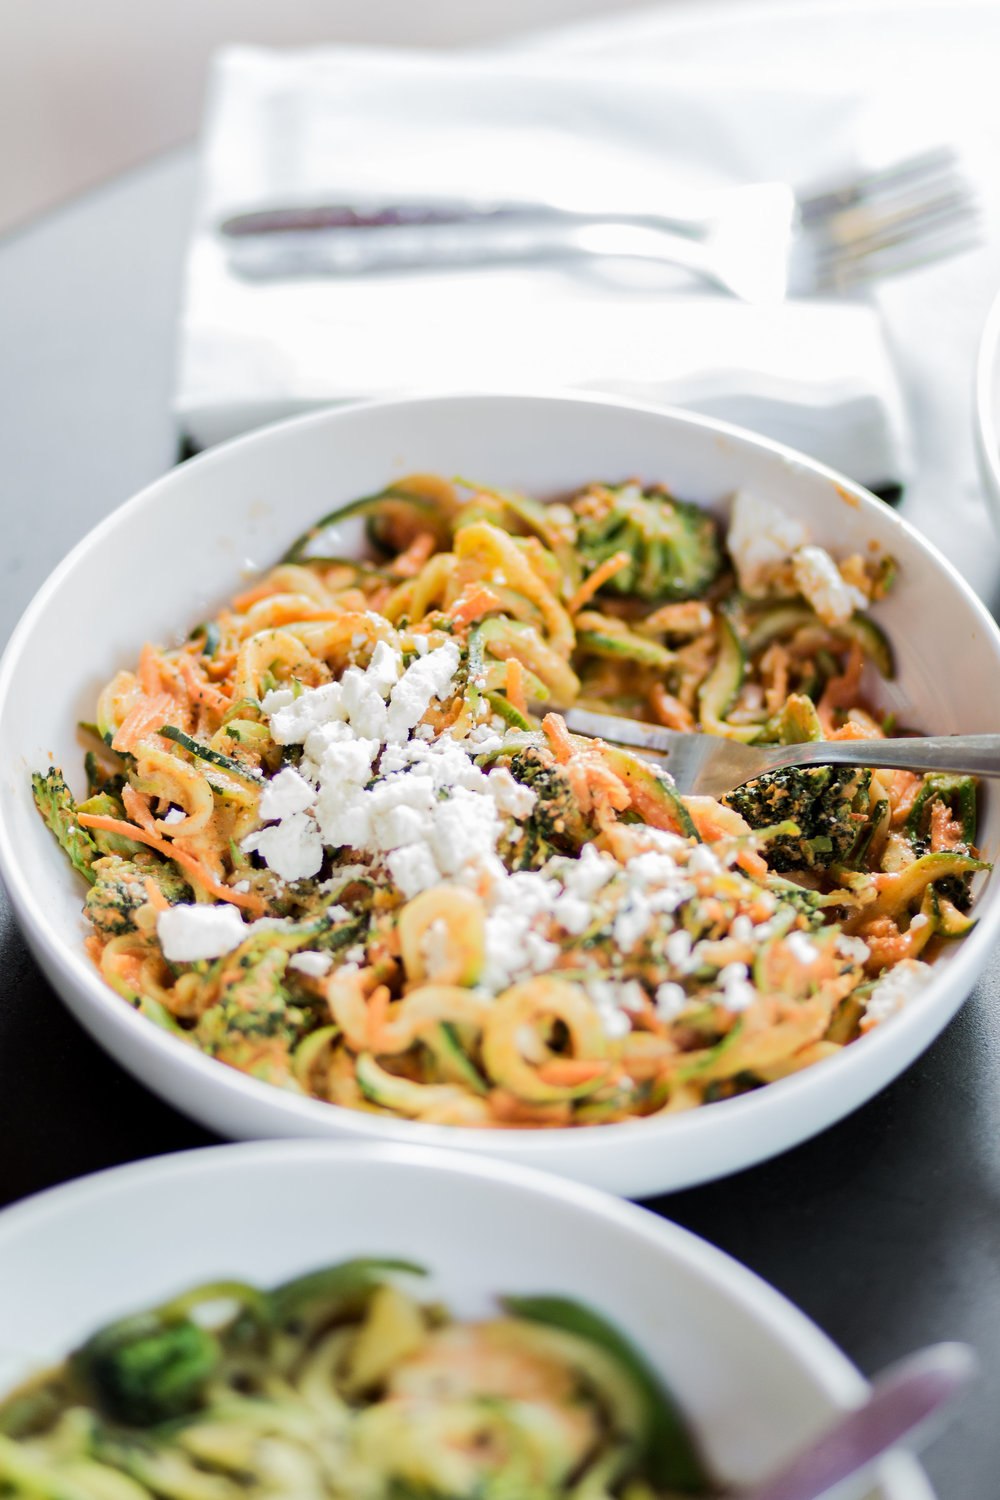 zoodles at noodles & company — anchored in health